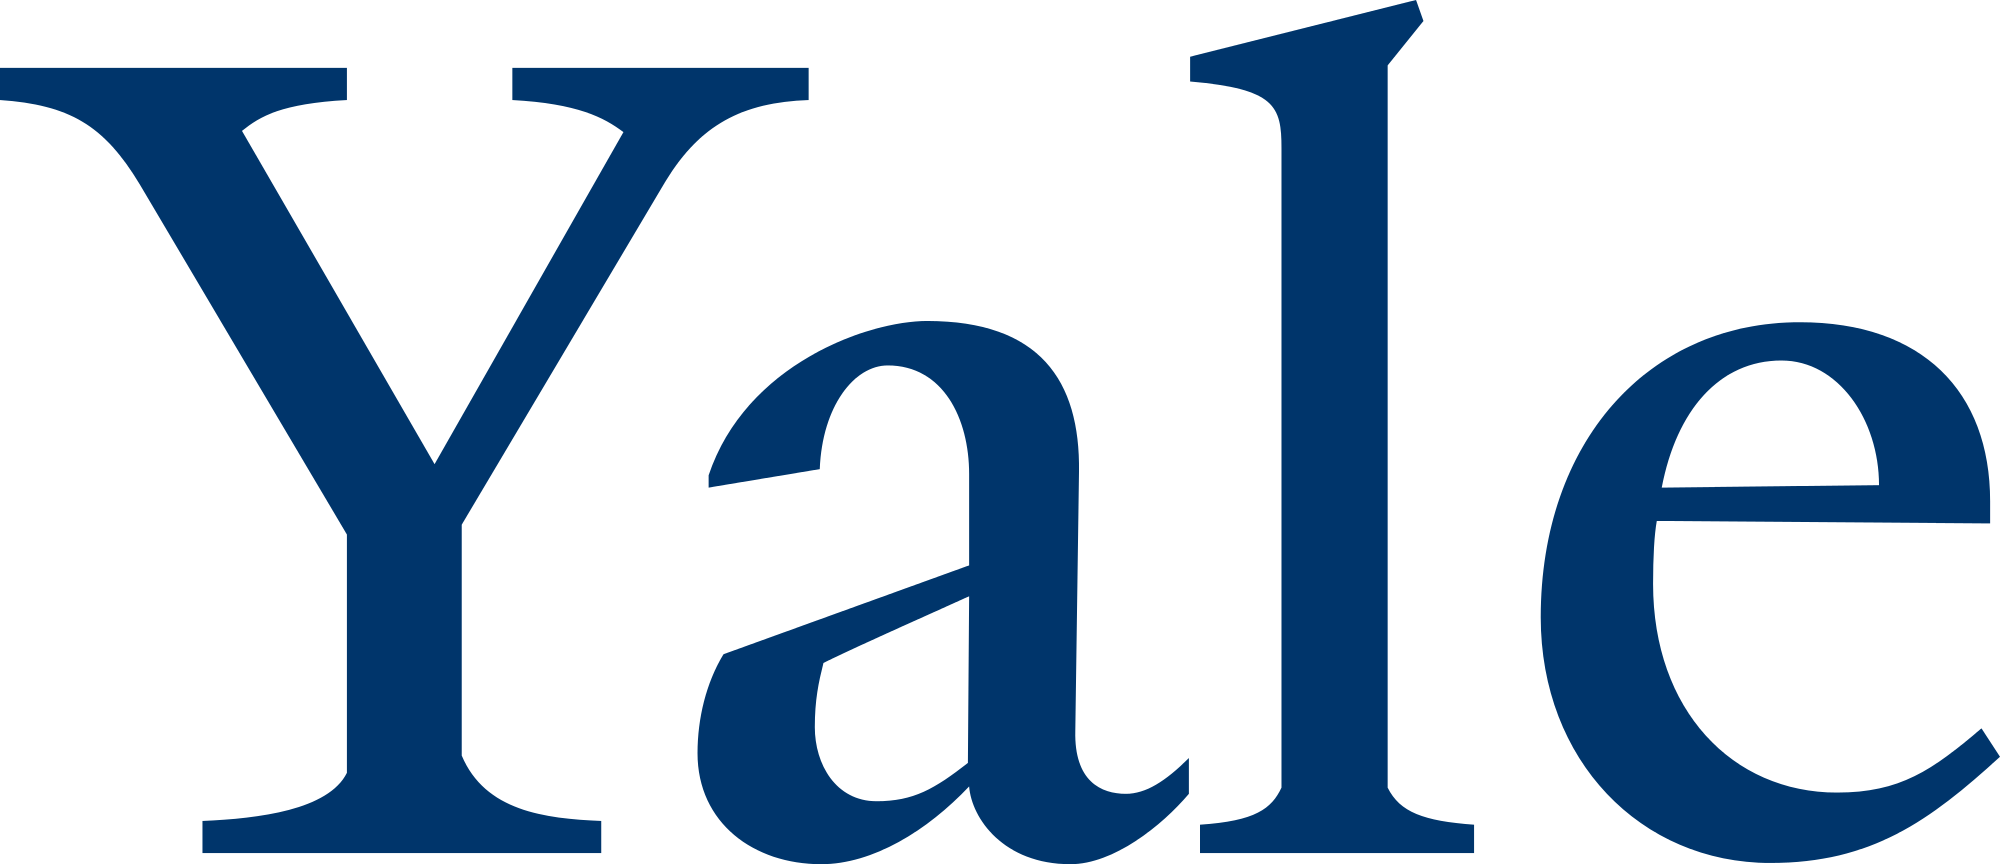 Yale Security Careers